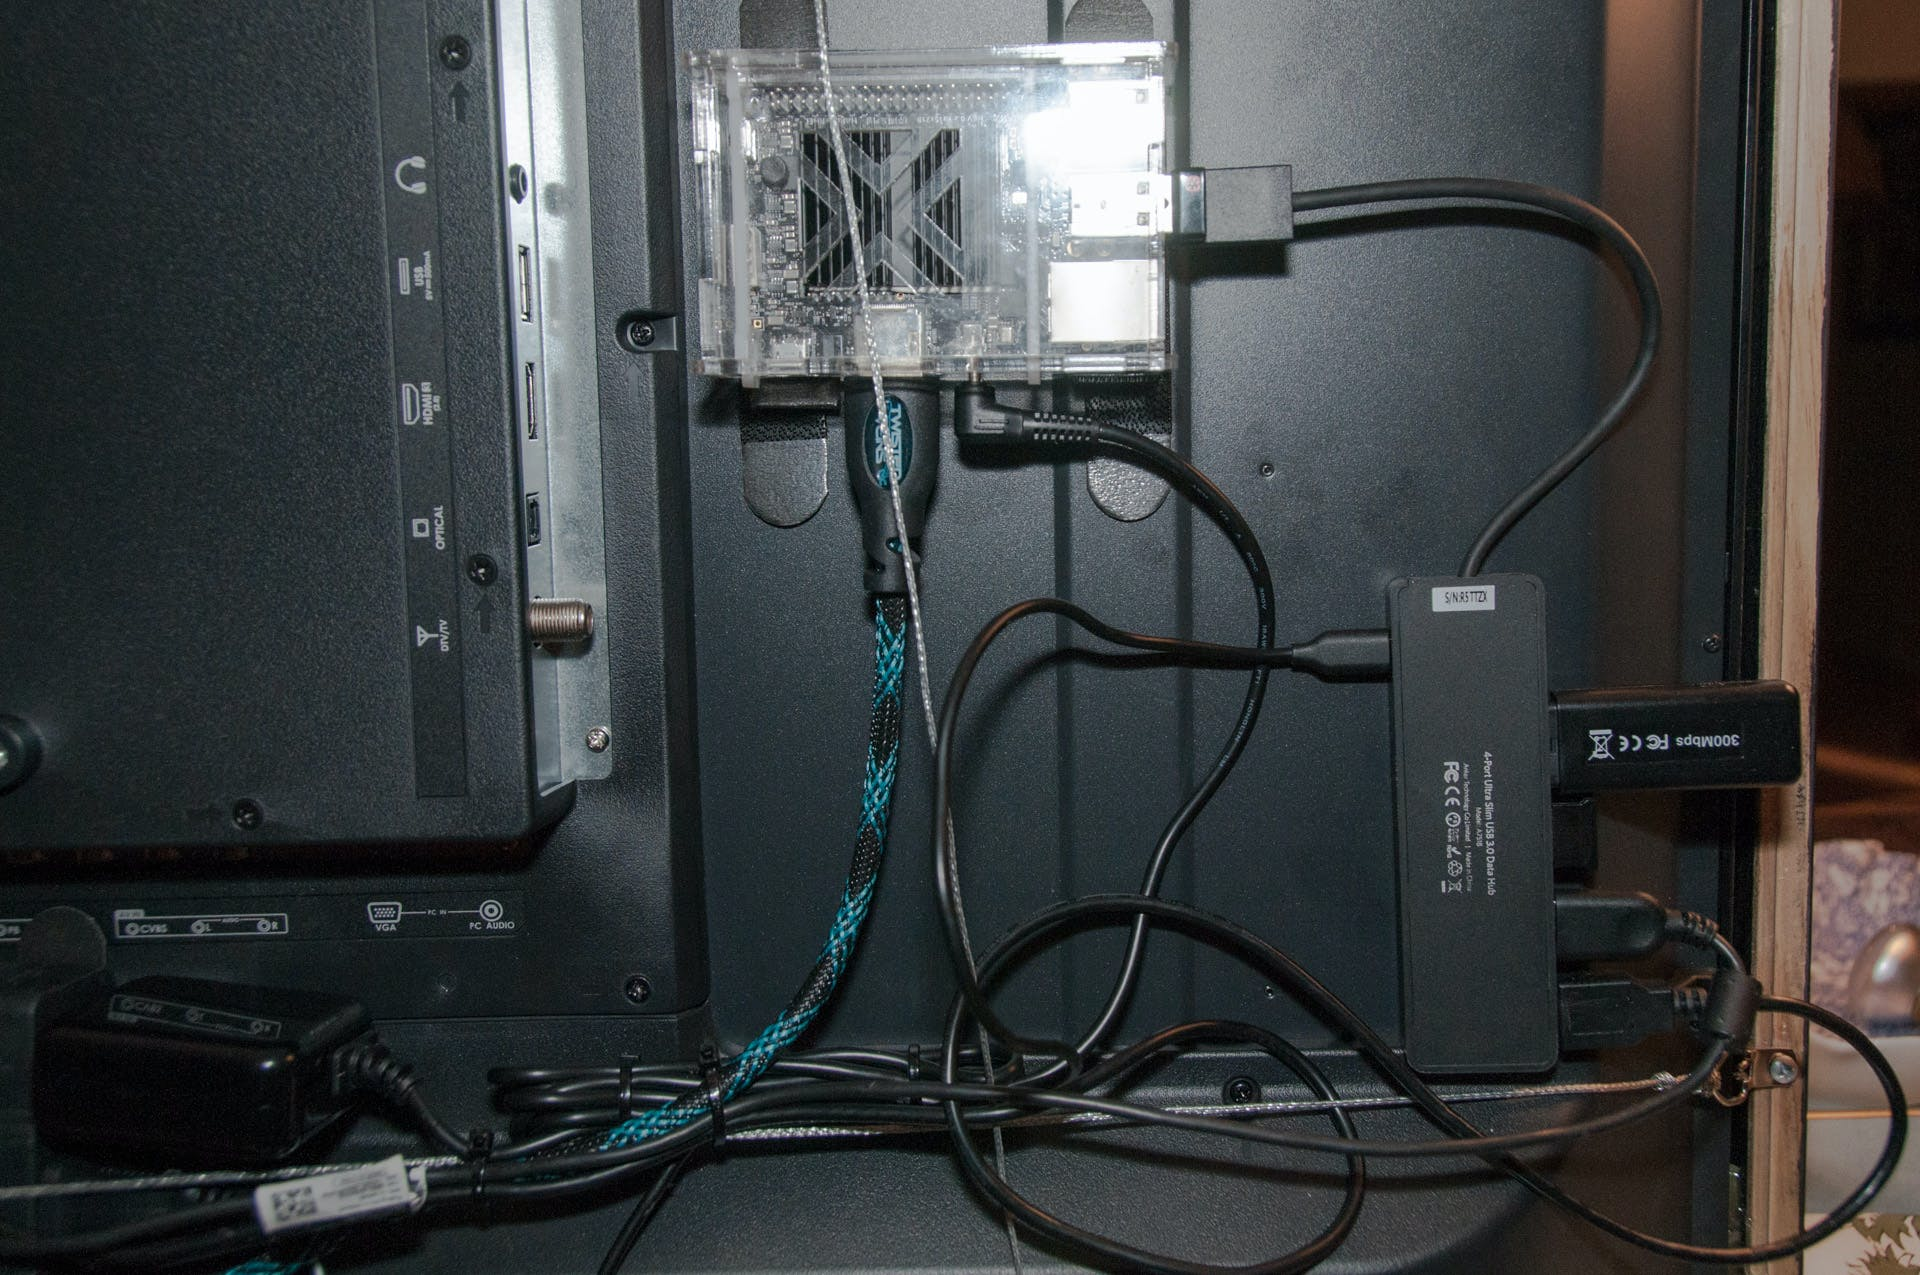 Used Command strips to held the Odroid C2 and USB hub to the TV. Later it can be removed without damaging the TV